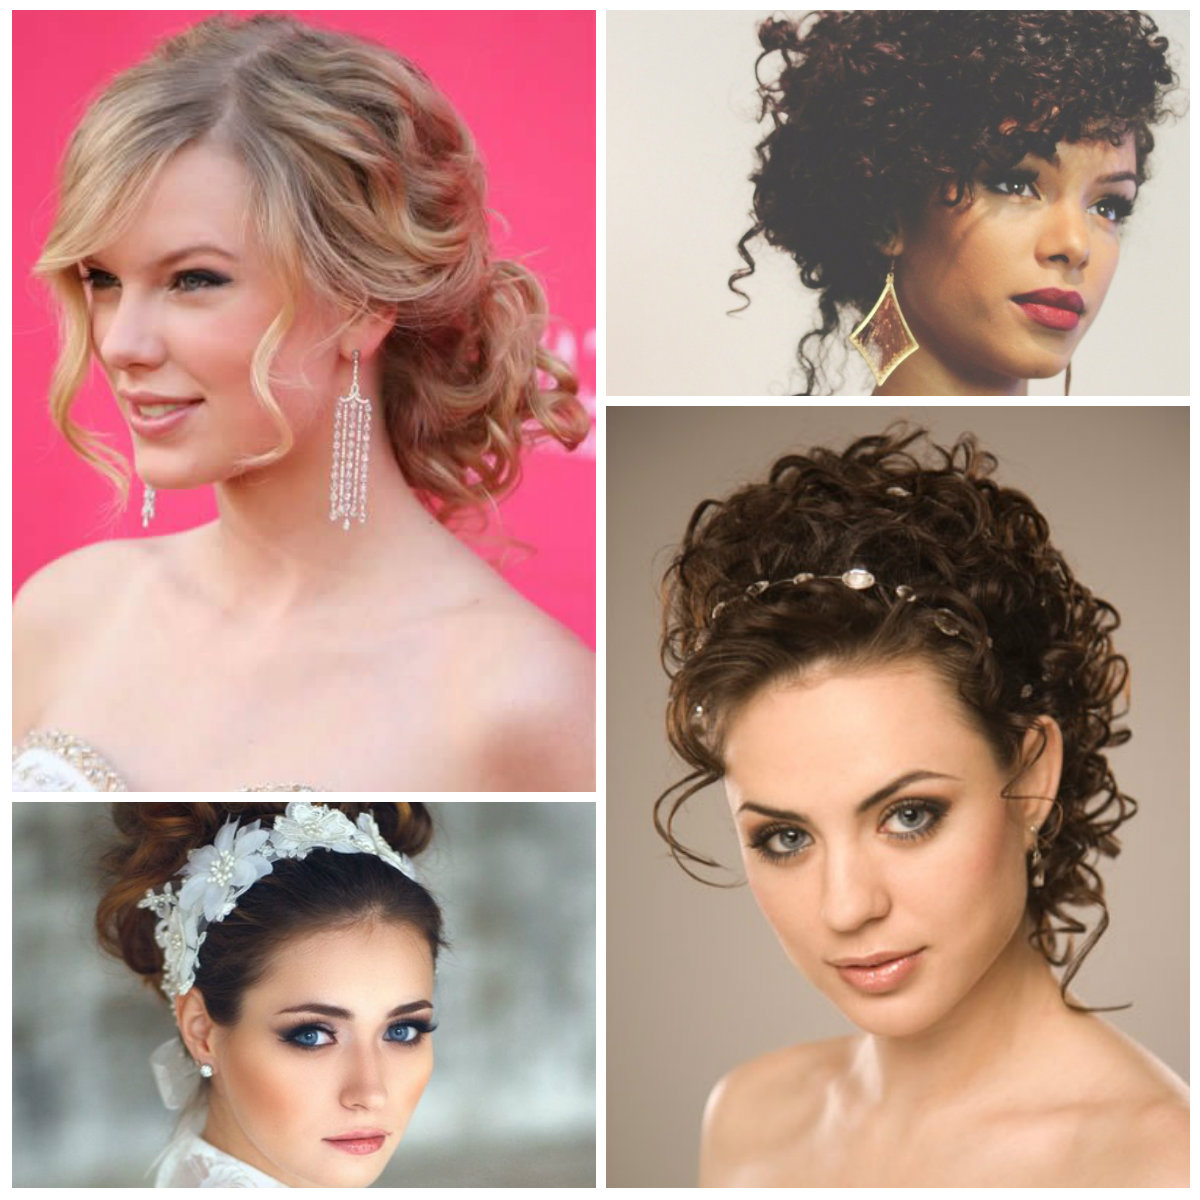 Most Recent Voluminous Curly Updo Hairstyles With Bangs For 25 Simple And Stunning Updo Hairstyles For Curly Hair – Haircuts (View 7 of 20)